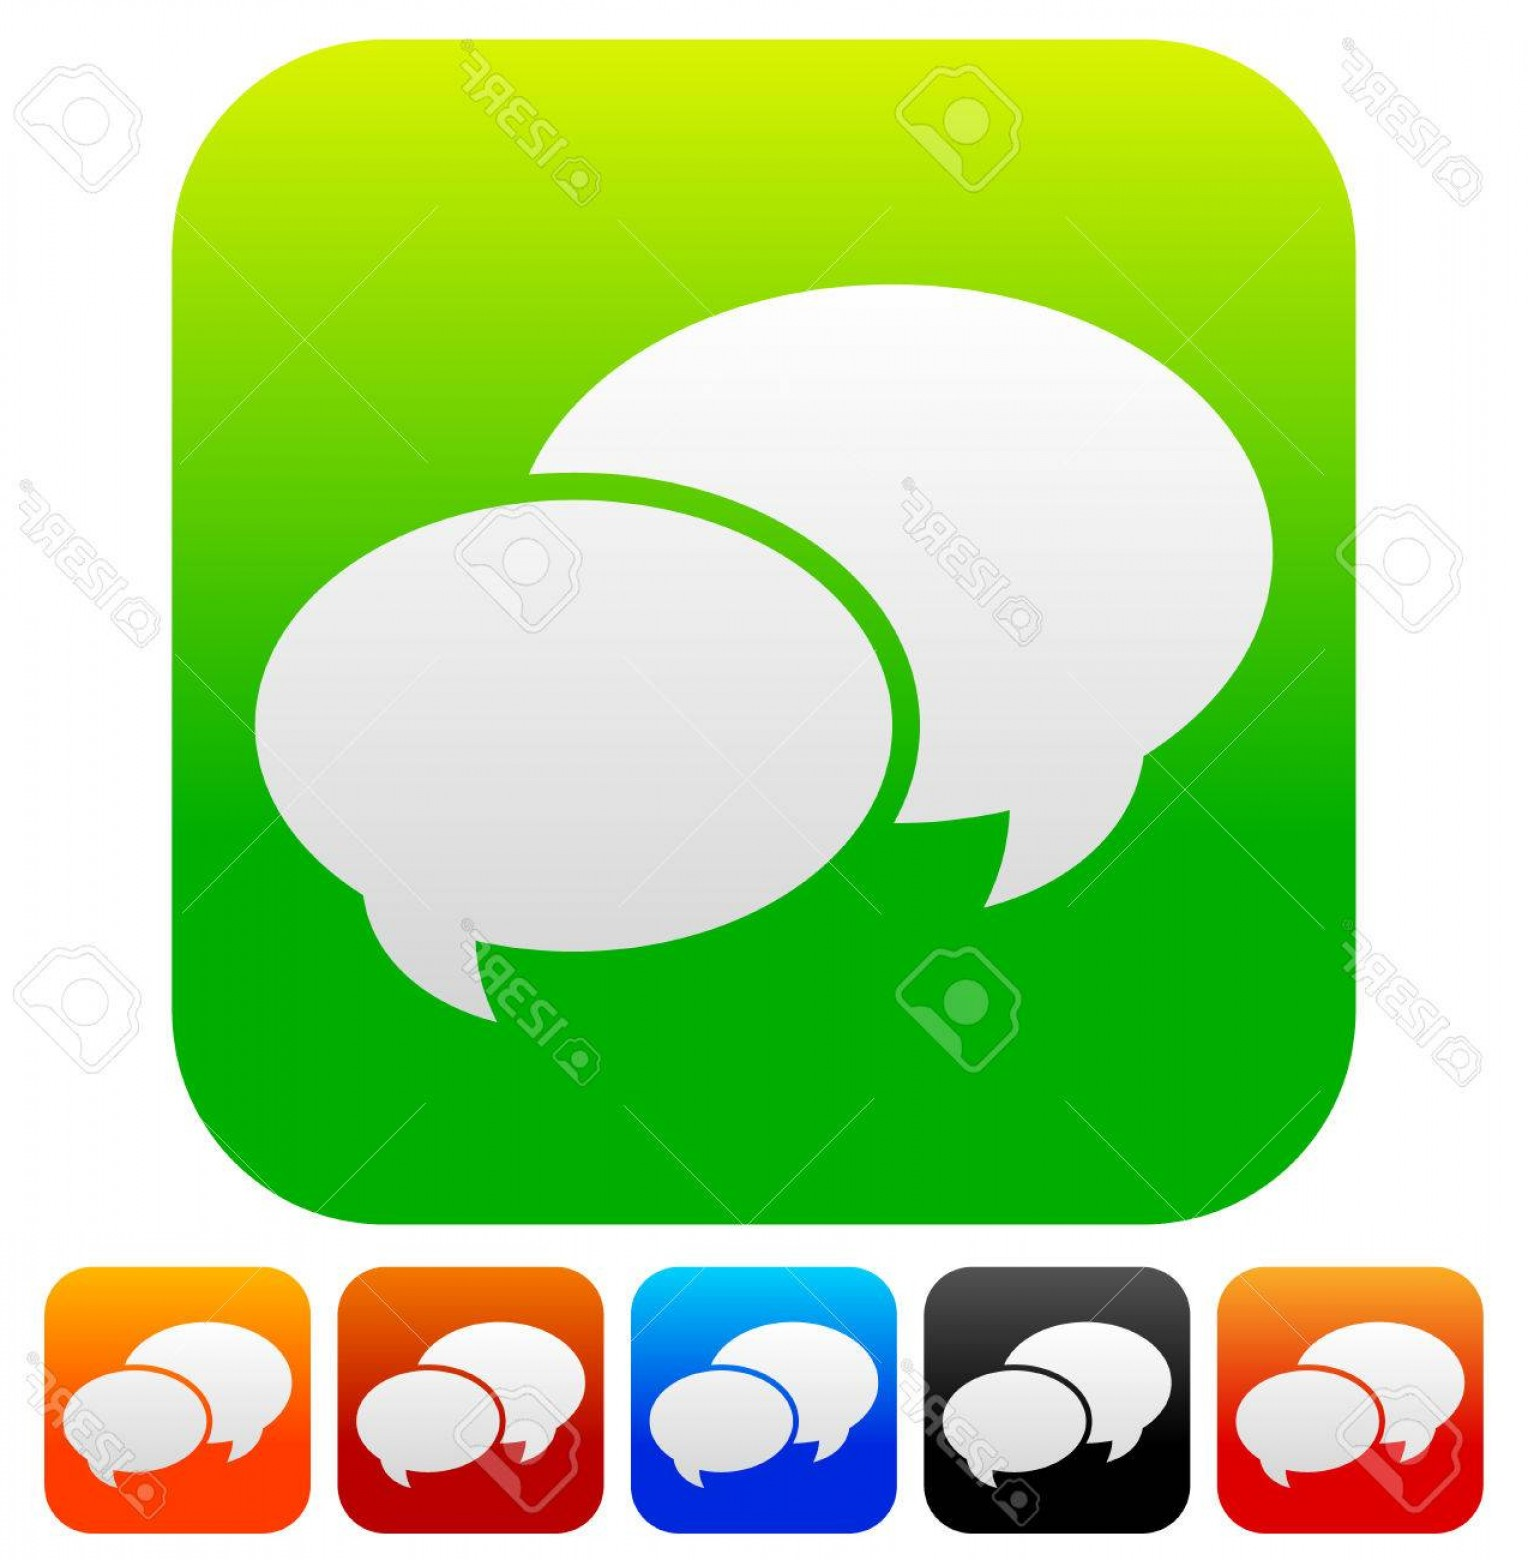 Support Vector Graphics: Photostock Vector Speech Bubble Vector Graphics Two Overlapping Speech Talk Bubbles For Communication Chat Support Con